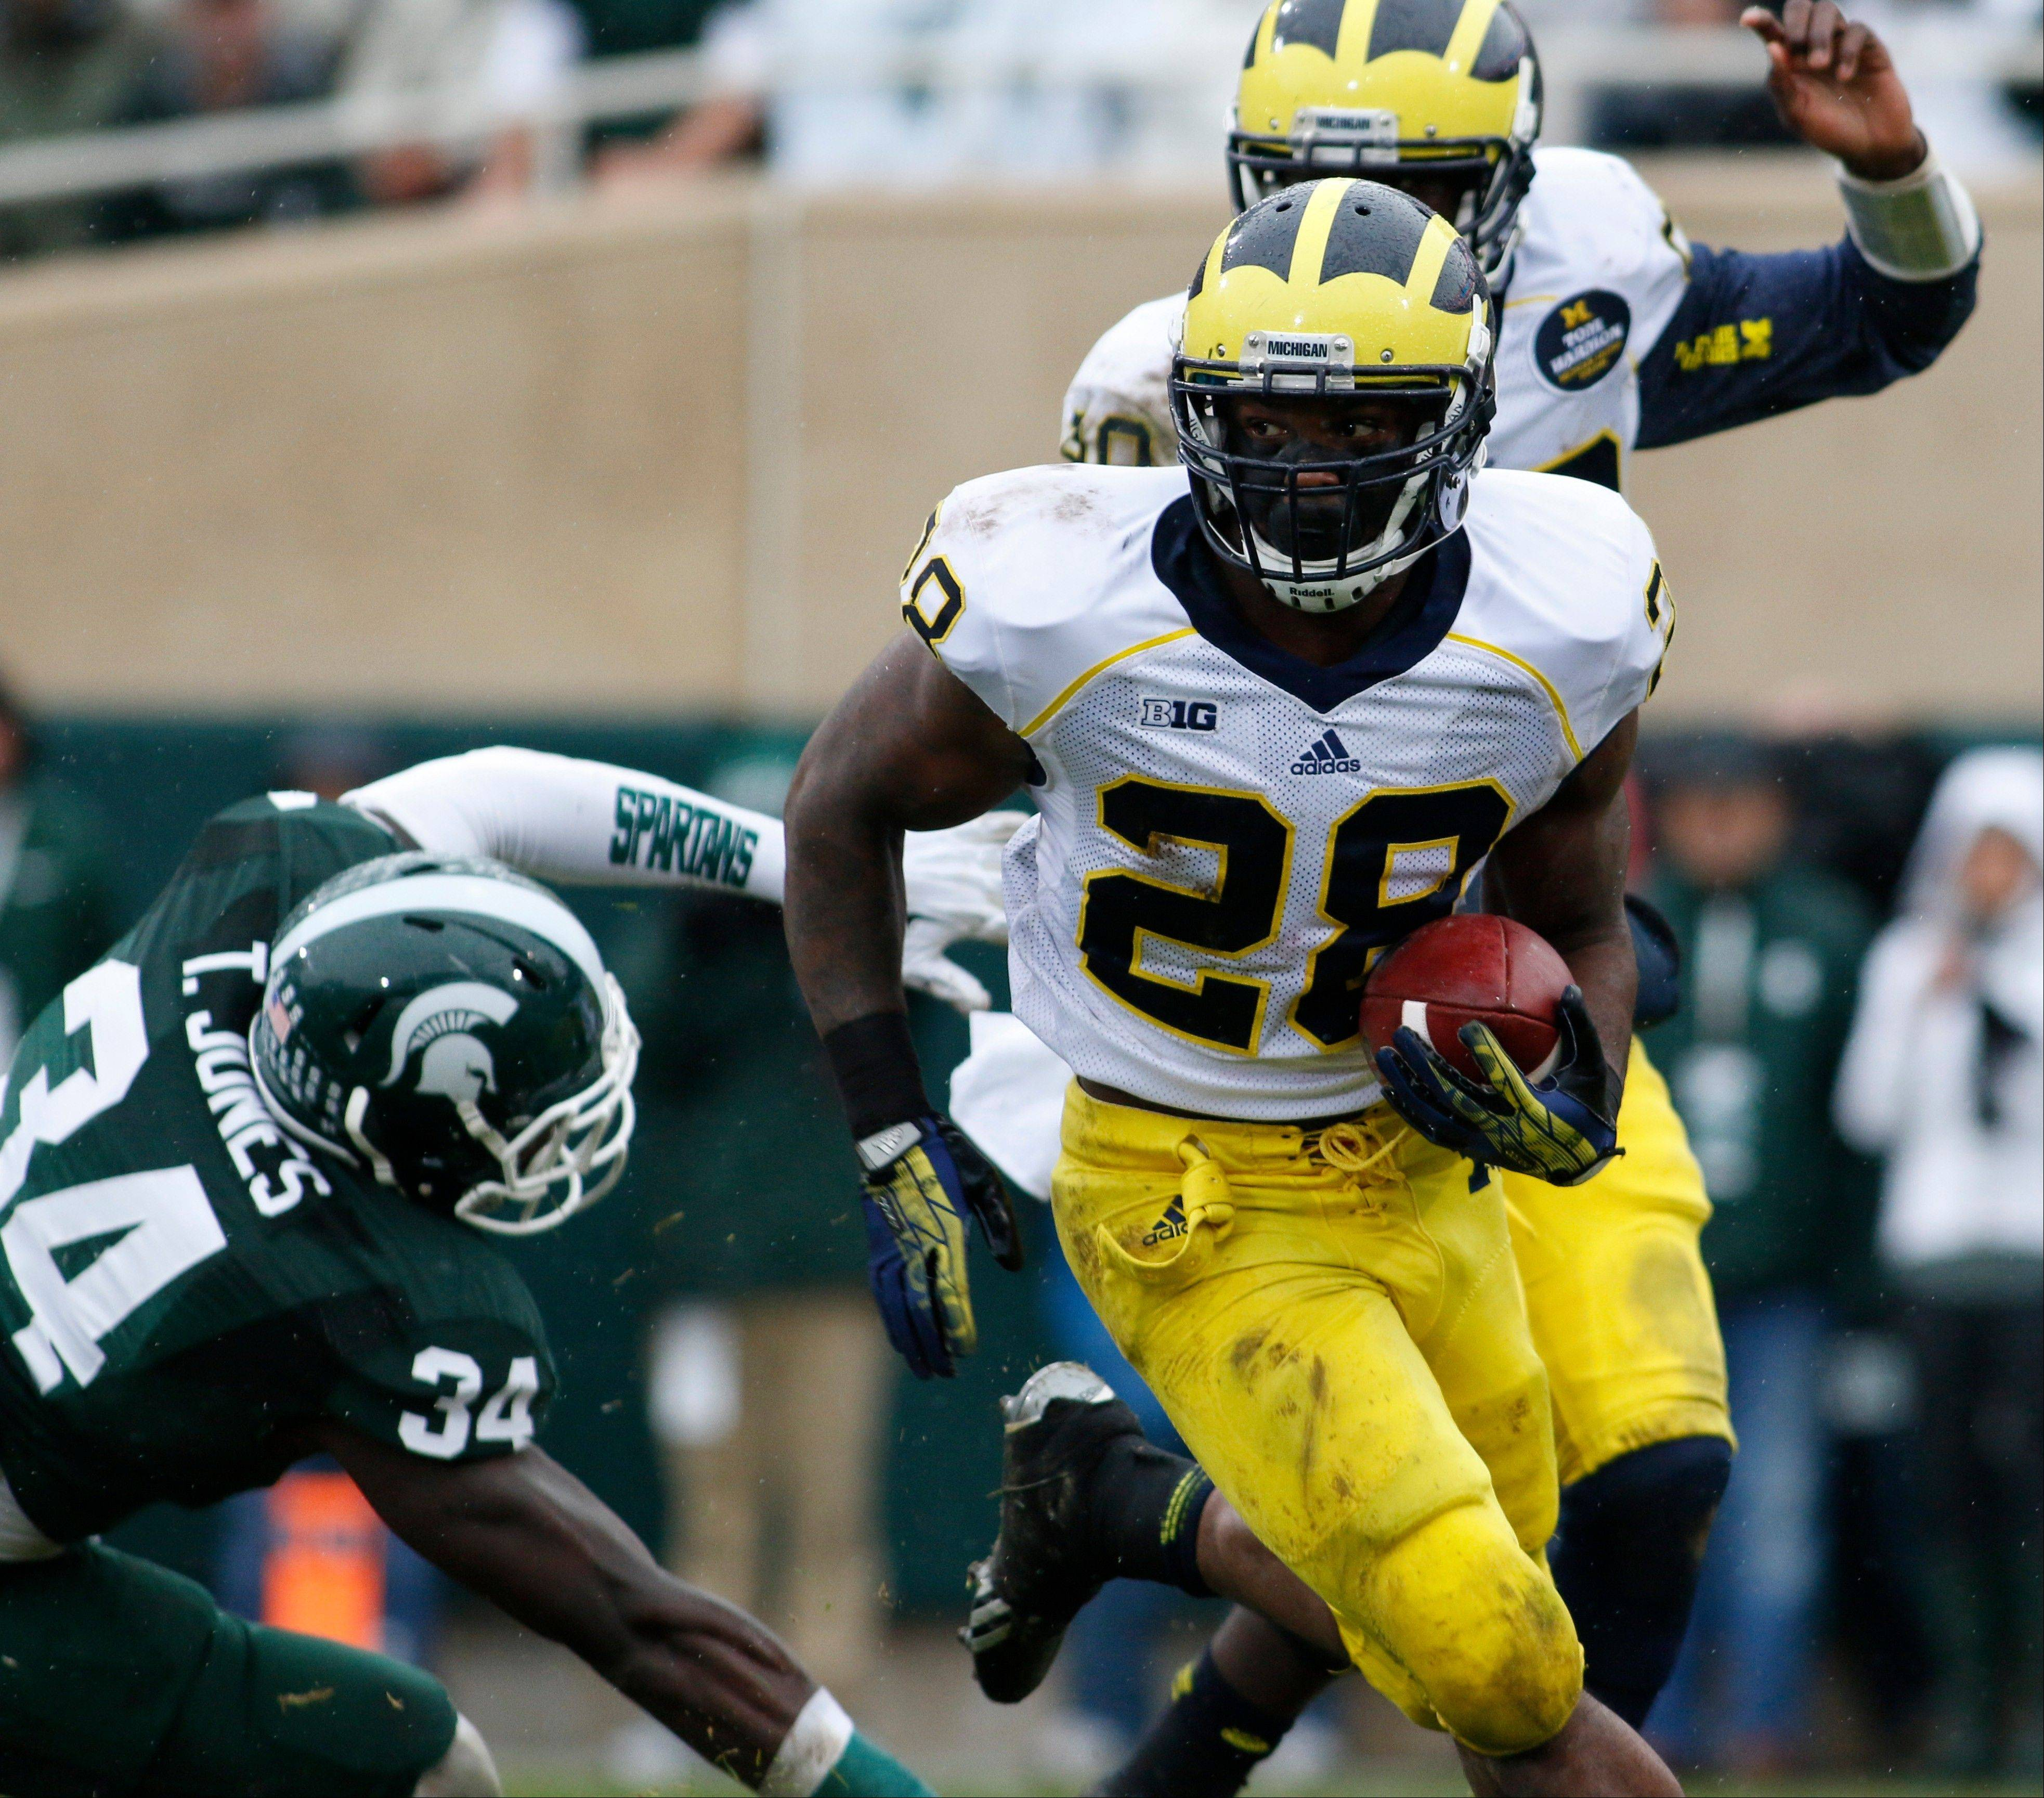 Michigan's Fitzgerald Toussaint (28) rushes against Michigan State's Taiwan Jones (34) during the first quarter.